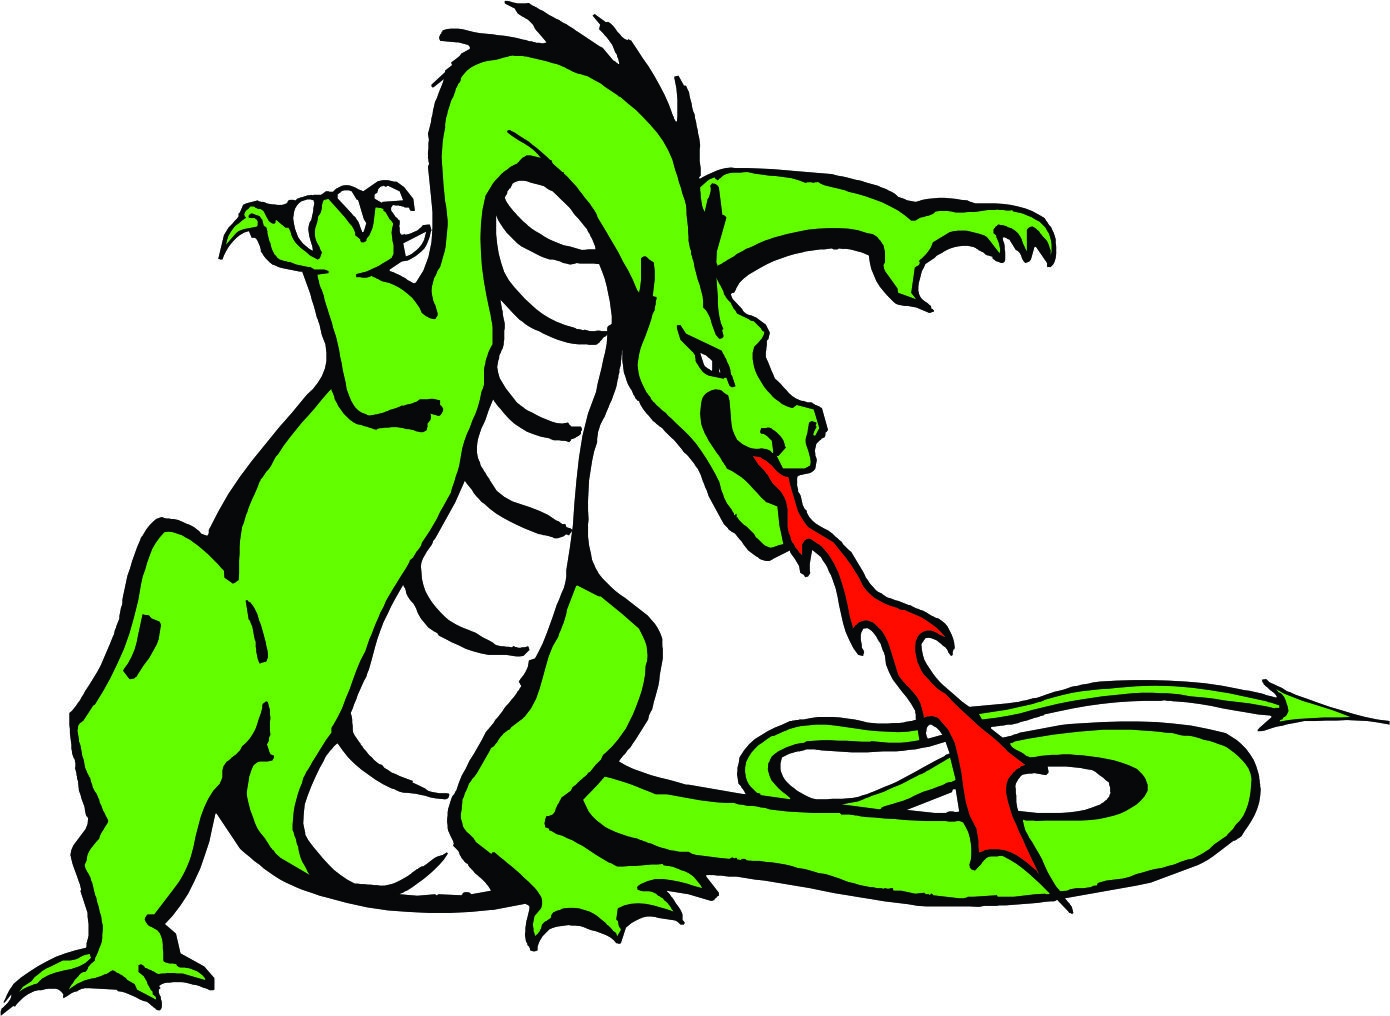 Fire Breathing Green Dragon Mascot